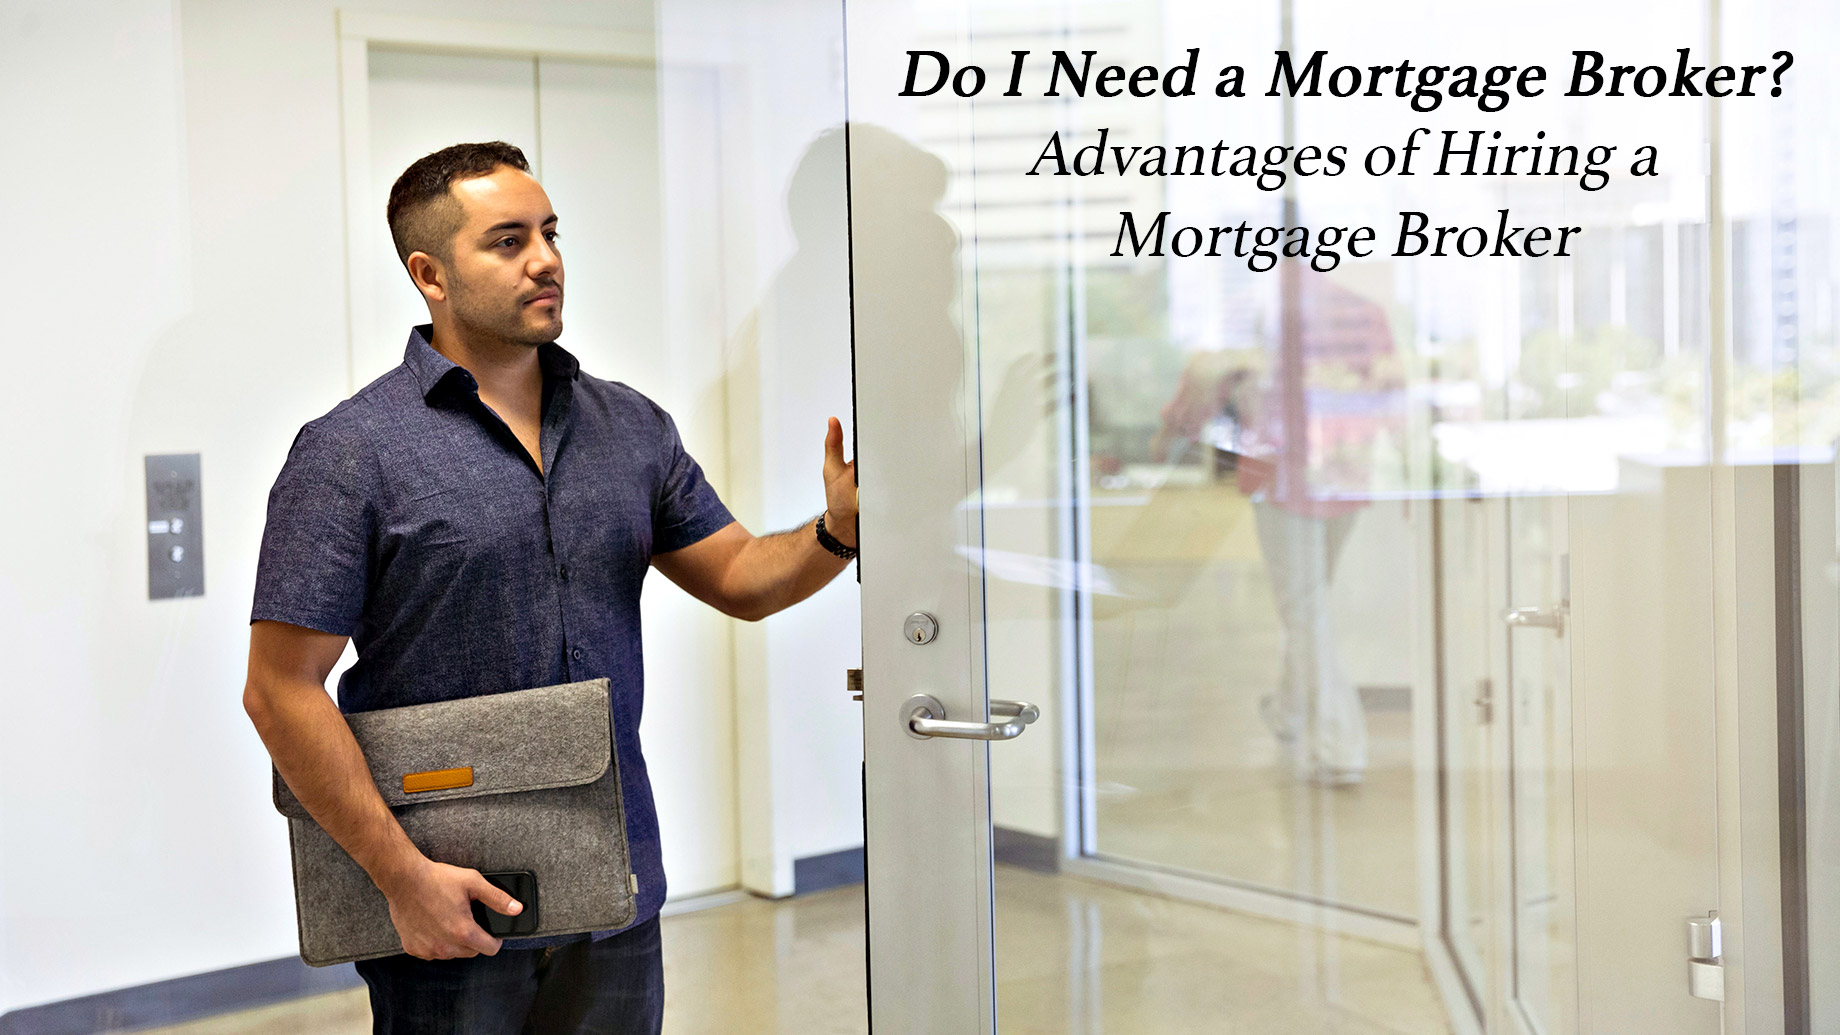 Do I Need a Mortgage Broker? Advantages of Hiring a Mortgage Broker